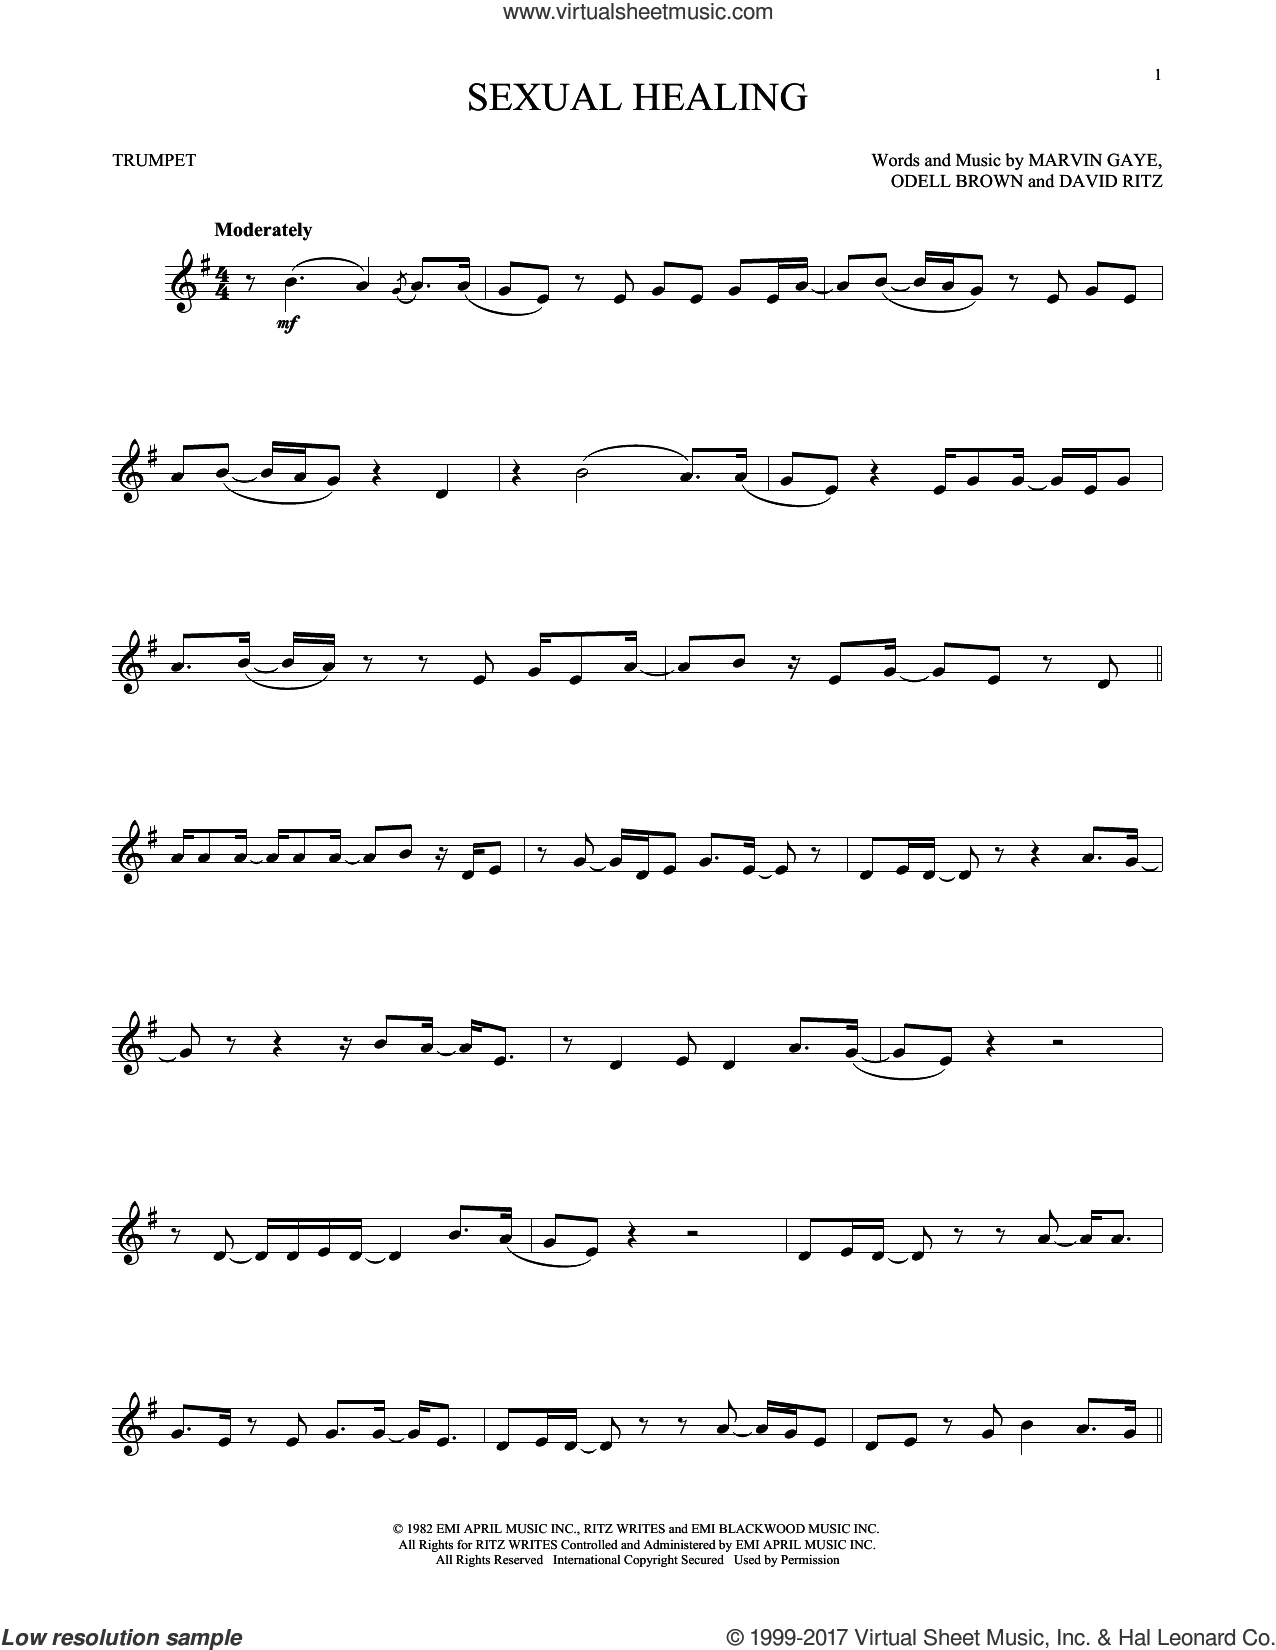 Sexual Healing sheet music for trumpet solo by Marvin Gaye, David Ritz and Odell Brown, intermediate skill level